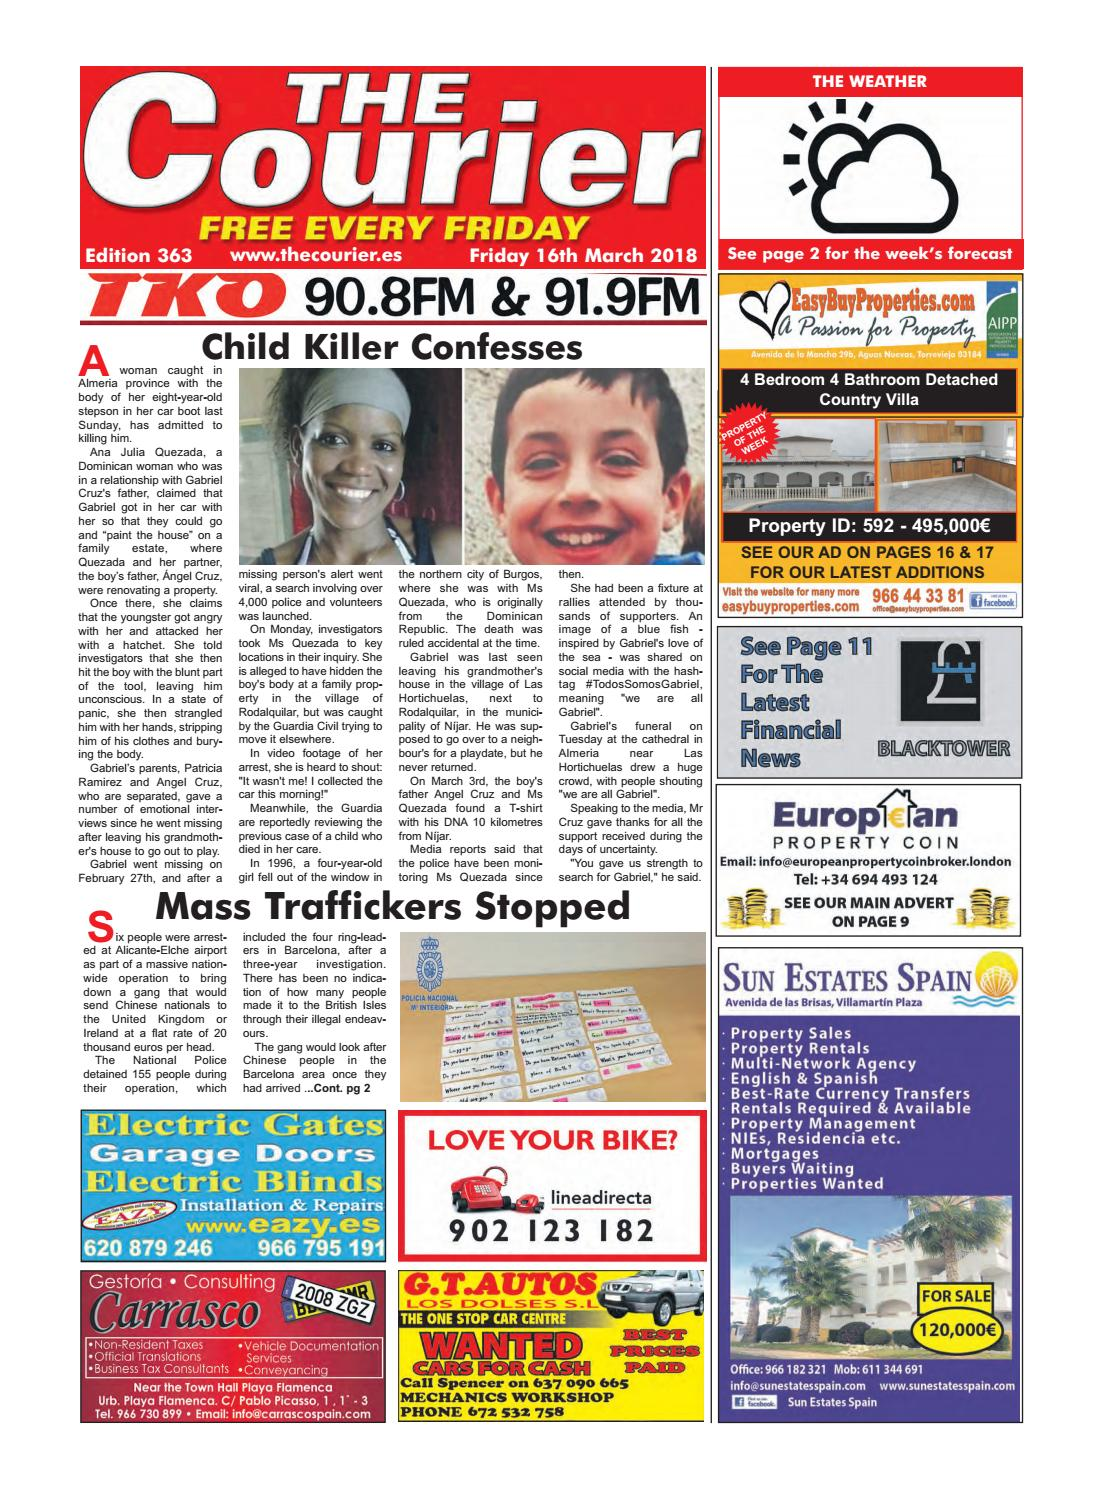 The Courier Edition 363 By The Courier Newspaper Issuu